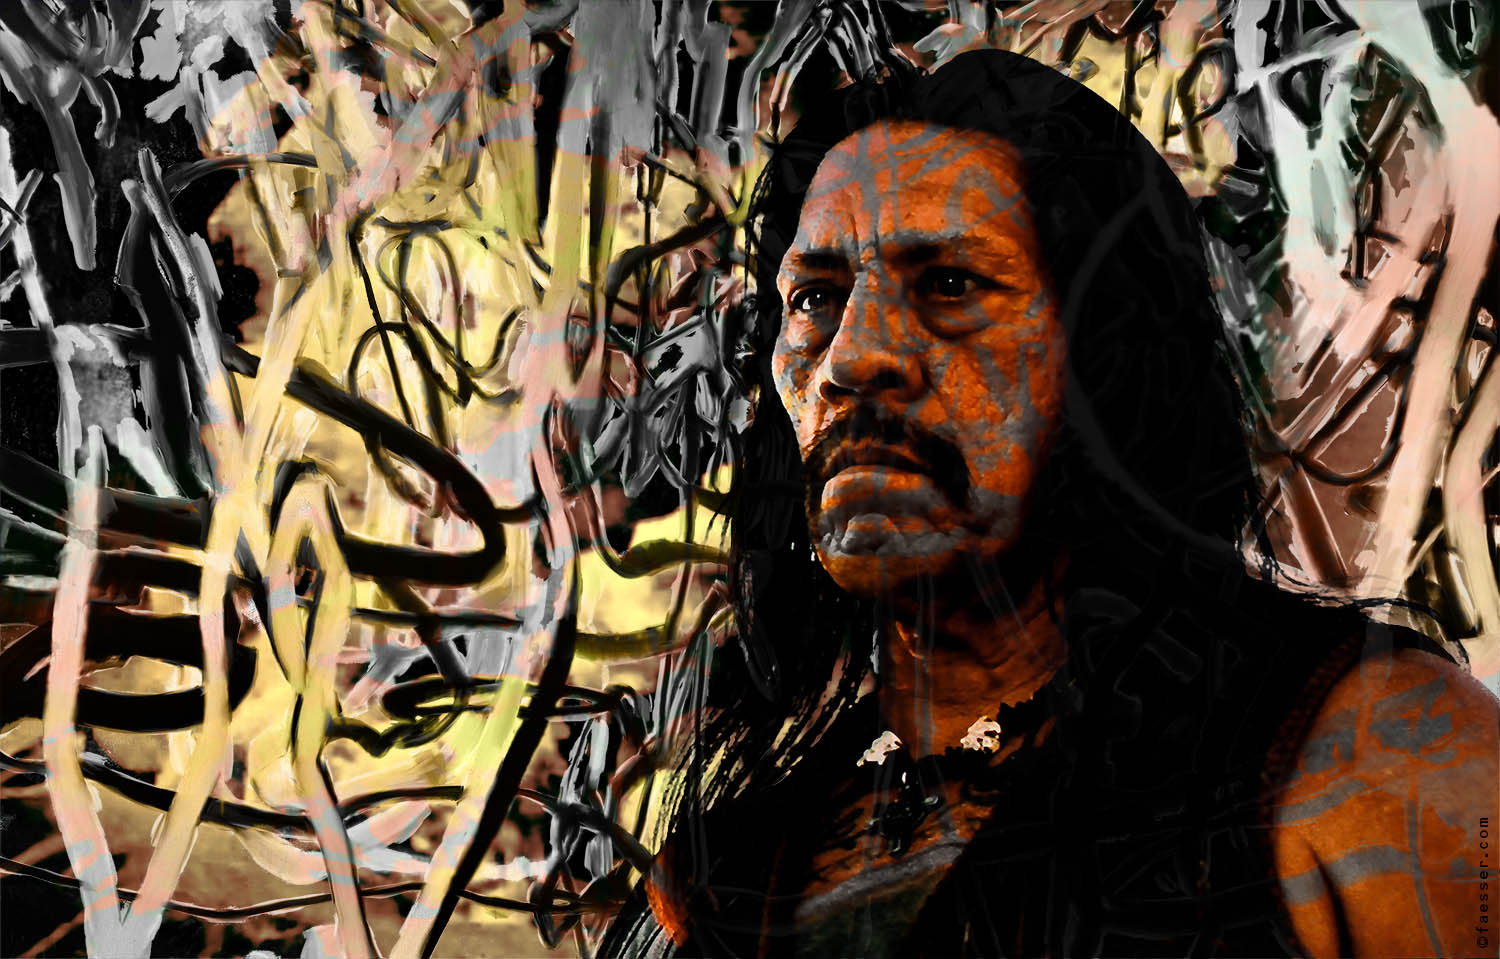 Machete: Danny Trejo from the film Machete with abstract overpainting; artist Roland Faesser, sculptor and painter 2017